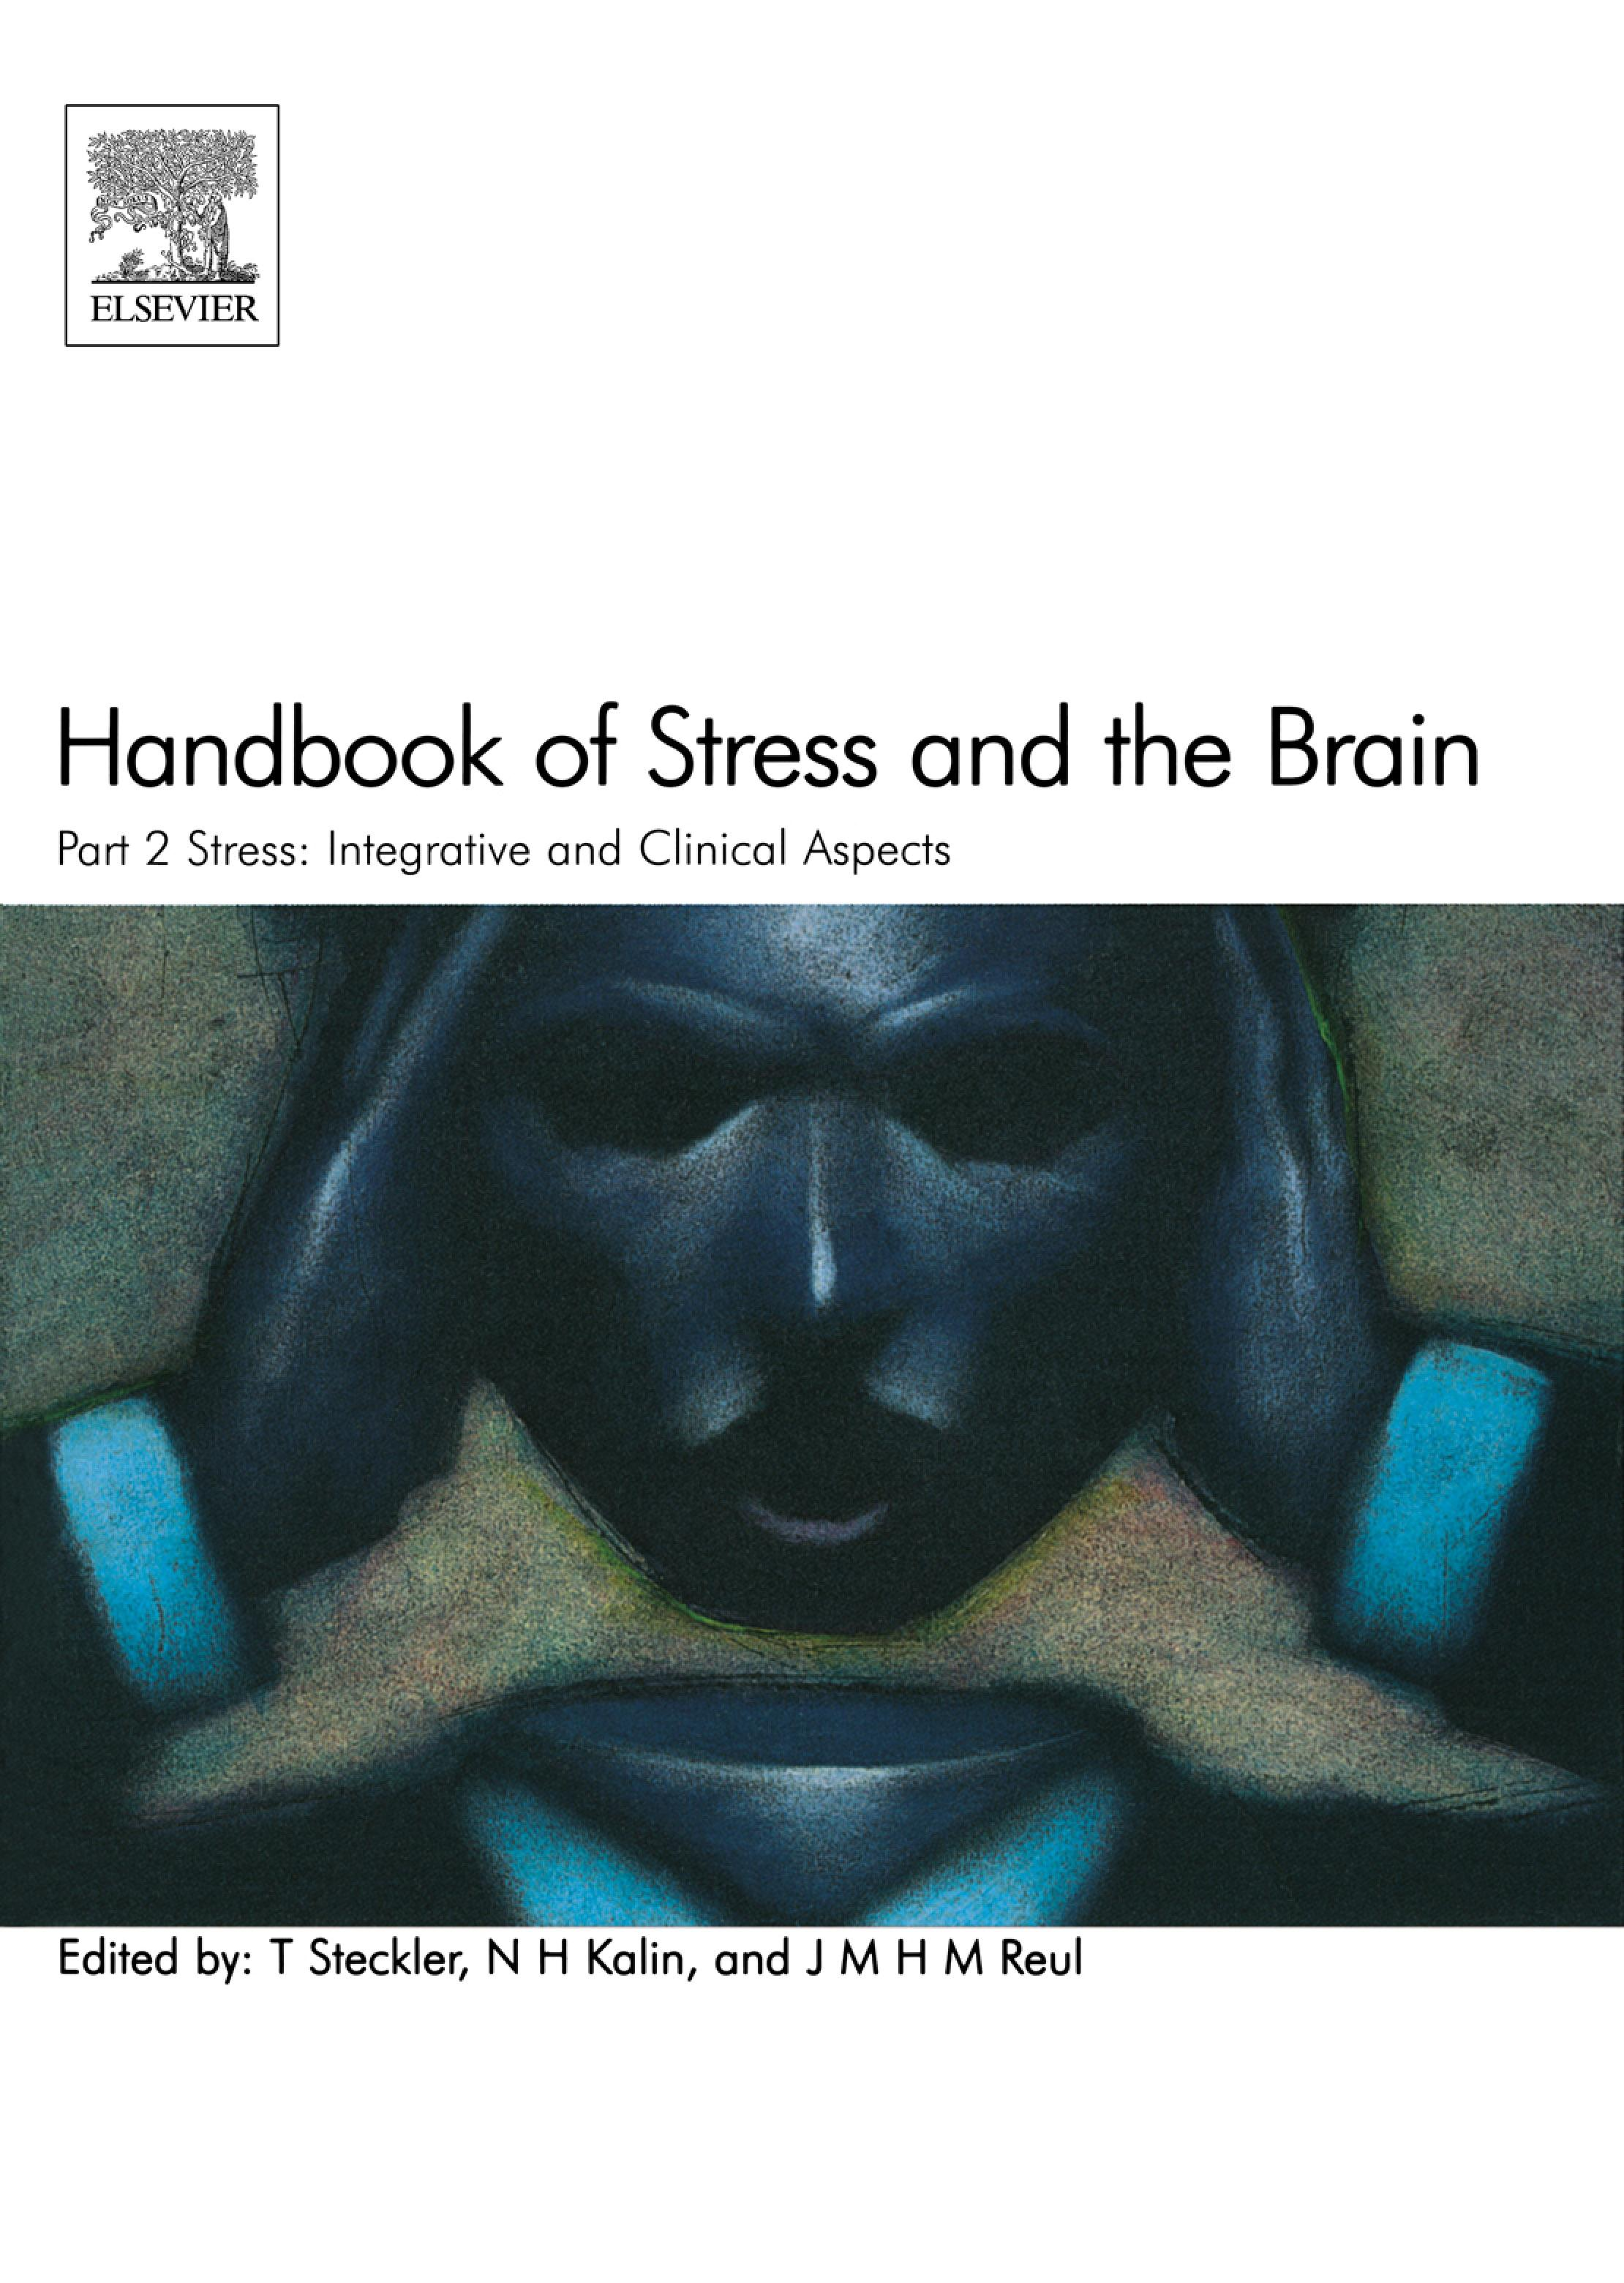 Handbook of Stress and the Brain Part 2: Stress: Integrative and Clinical Aspects: Stress: Integrative and Clinical Aspects EB9780080553313